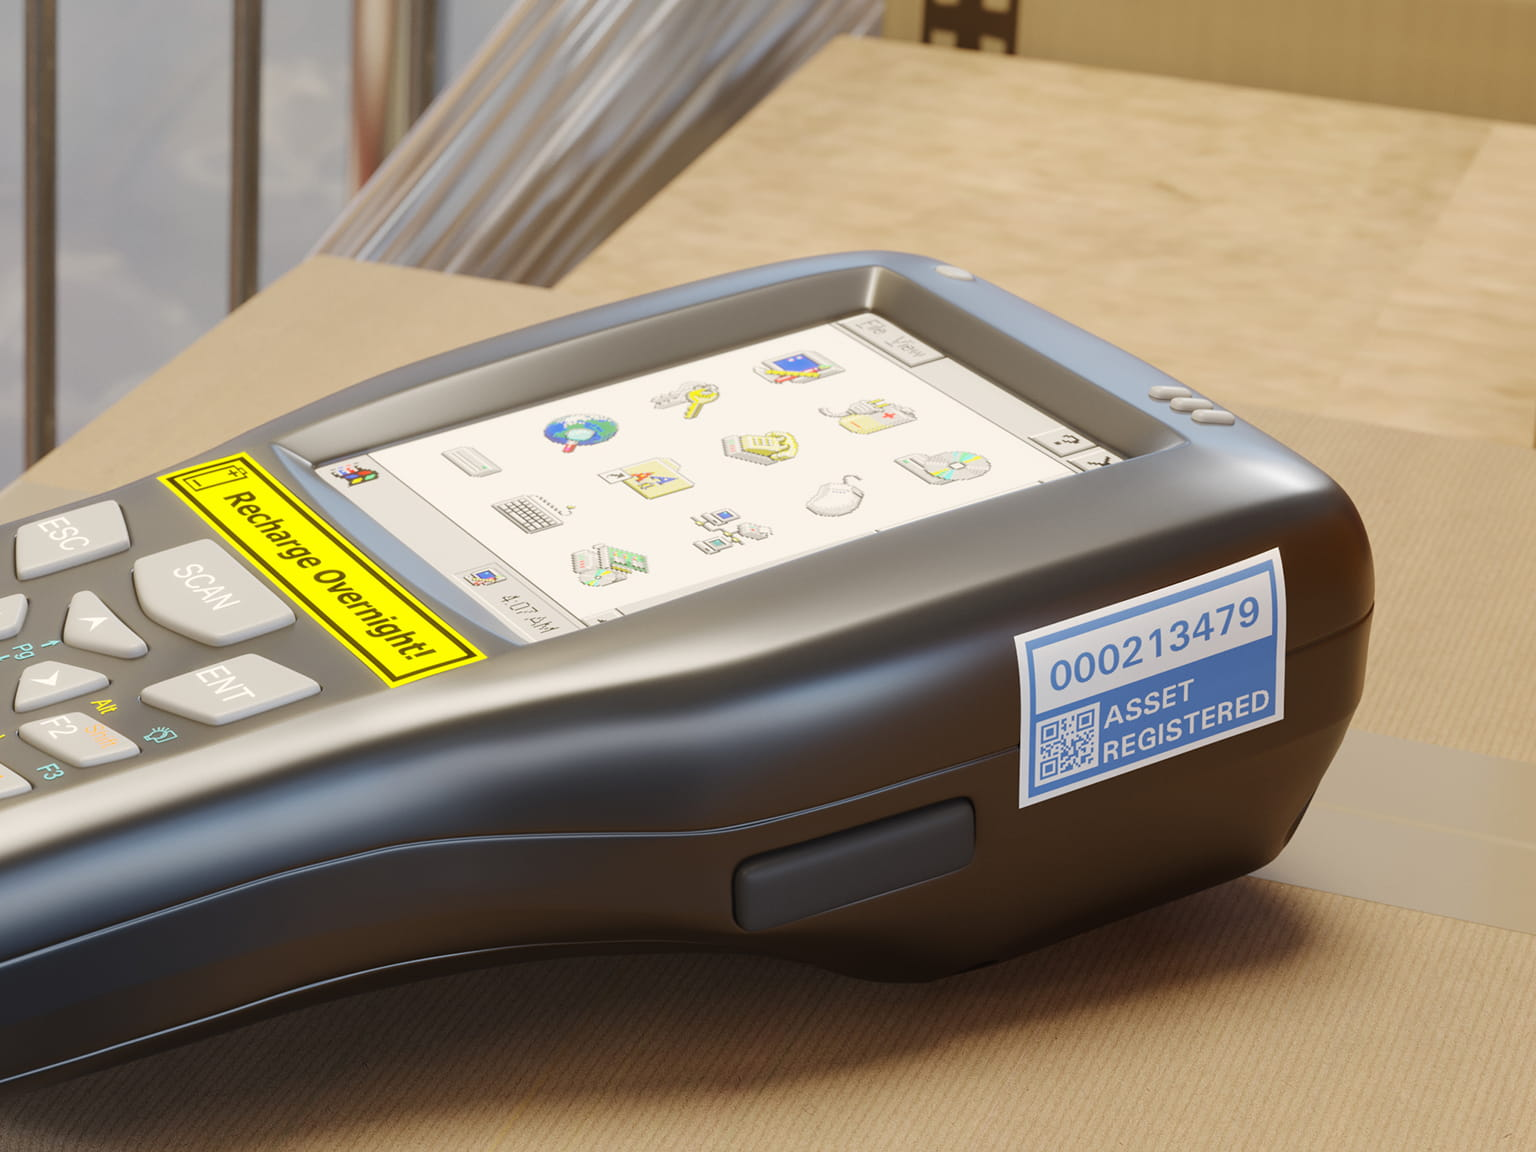 Barcode scanner with blue on white durable asset label printed on a Brother P-touch TZe laminated label